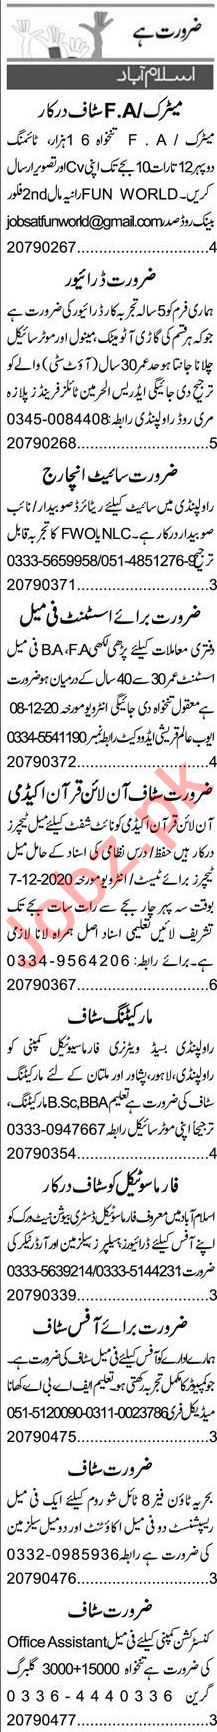 Express Sunday Classified Ads 6 Dec 2020 for Office Staff